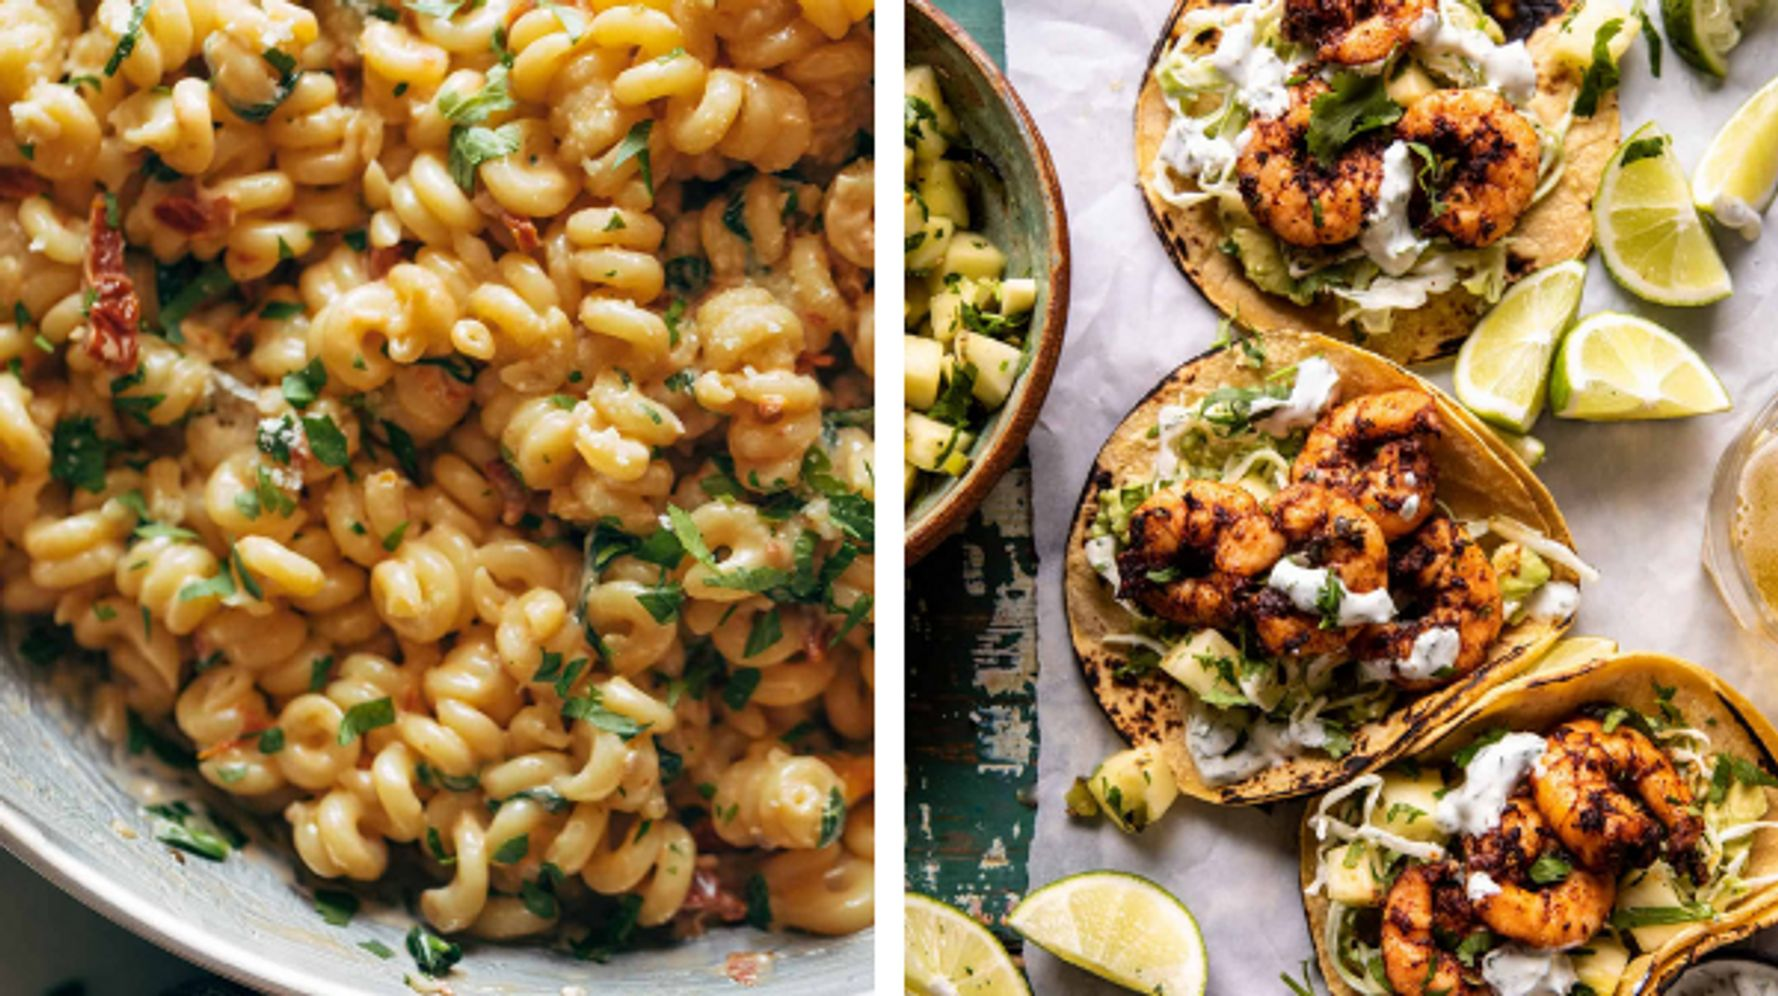 The Top 12 Recipes Instagram Went Wild For In June